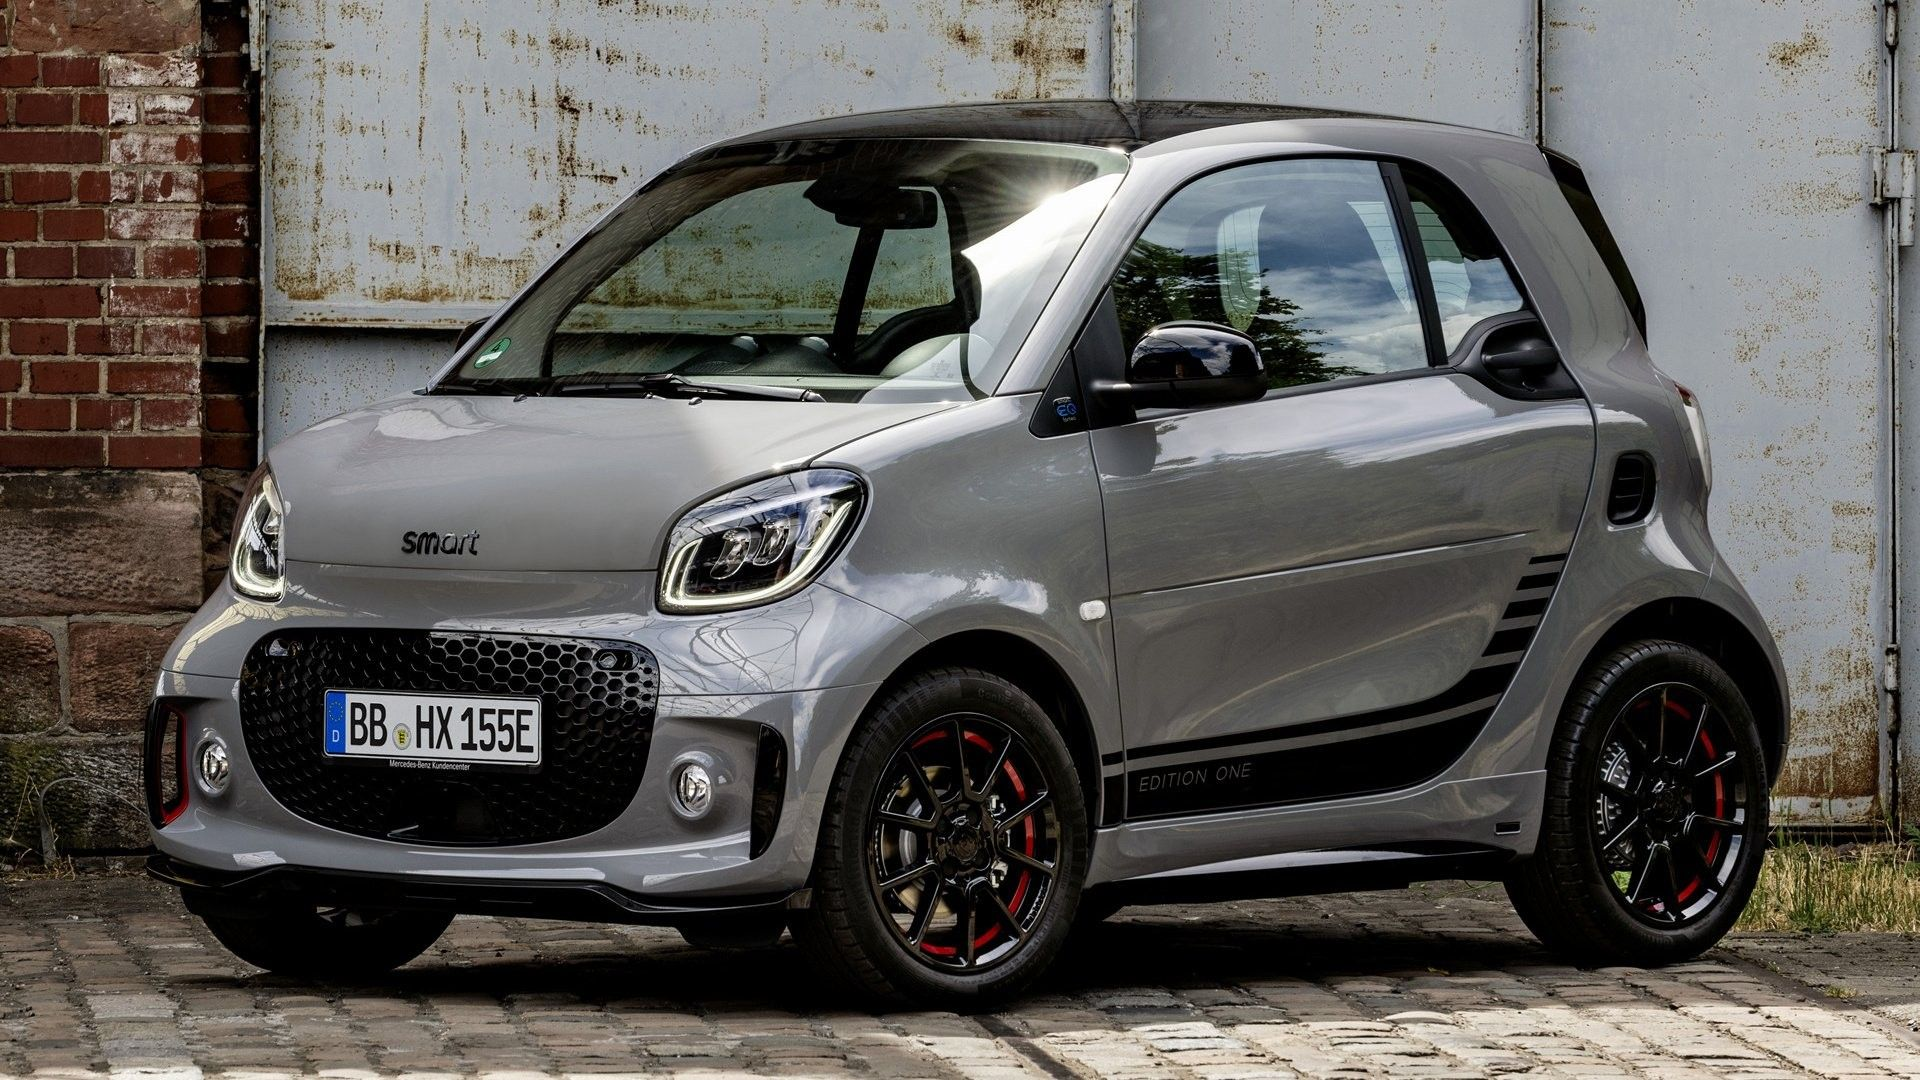 Pin By Viper Warrior On Luxury Cars Smart Fortwo City Car New Cars